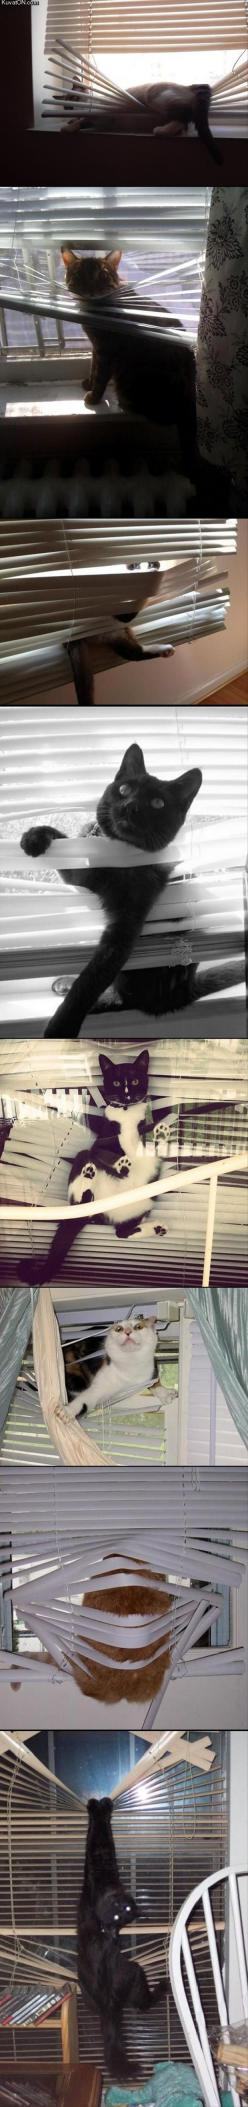 Cats & blinds don't mix: Animals, Buy Blinds, Blinds Don T, Funny Cats, Cats Blinds, Kitty, Funny Pussycat